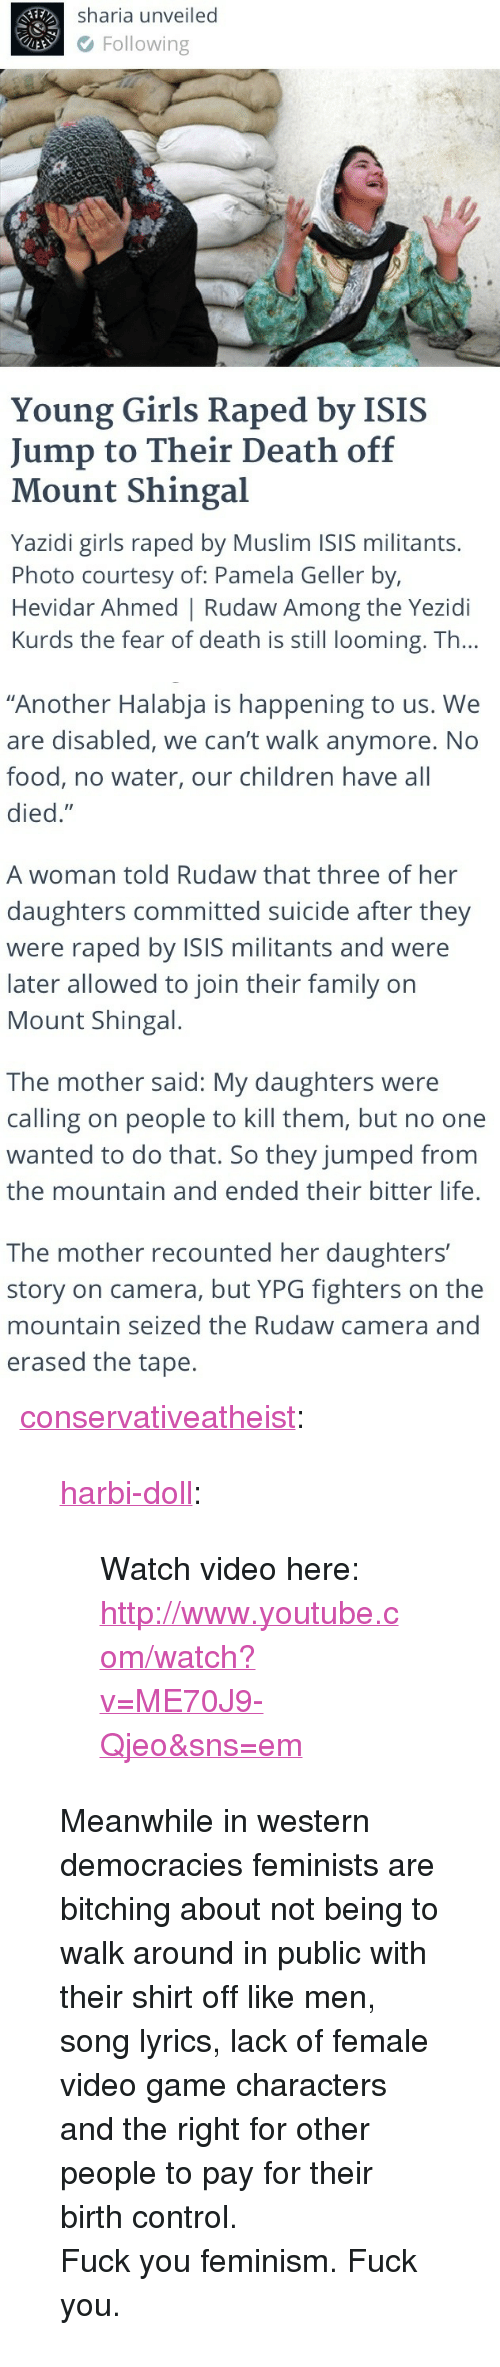 """Children, Family, and Feminism: Sharia unveiled  Following  Young Girls Raped by ISIS  Jump to Their Death off  Mount Shingal  Yazidi girls raped by Muslim ISIS militants.  Photo courtesy of: Pamela Geller by,  Hevidar Ahmed   Rudaw Among the Yezidi  Kurds the fear of death is still looming. Th...   """"Another Halabja is happening to us. We  are disabled, we can't walk anymore. No  food, no water, our children have all  died.""""  A woman told Rudaw that three of her  daughters committed suicide after they  were raped by ISIS militants and were  later allowed to join their family on  Mount Shingal.  The mother said: My daughters were  calling on people to kill them, but no one  wanted to do that. So they jumped from  the mountain and ended their bitter life.  The mother recounted her daughters'  story on camera, but YPG fighters on the  mountain seized the Rudaw camera and  erased the tape. <p><a href=""""http://conservativeatheist.tumblr.com/post/95437130100/harbi-doll-watch-video-here"""" class=""""tumblr_blog"""">conservativeatheist</a>:</p>  <blockquote><p><a class=""""tumblr_blog"""" href=""""http://harbi-doll.tumblr.com/post/95406583898/watch-video-here"""">harbi-doll</a>:</p> <blockquote> <p>Watch video here:<br/><a href=""""http://www.youtube.com/watch?v=ME70J9-Qjeo&sns=em"""">http://www.youtube.com/watch?v=ME70J9-Qjeo&sns=em</a></p> </blockquote> <p>Meanwhile in western democracies feminists are bitching about not being to walk around in public with their shirt off like men, song lyrics, lack of female video game characters and the right for other people to pay for their birth control.</p> <p>Fuck you feminism. Fuck you.</p></blockquote>"""